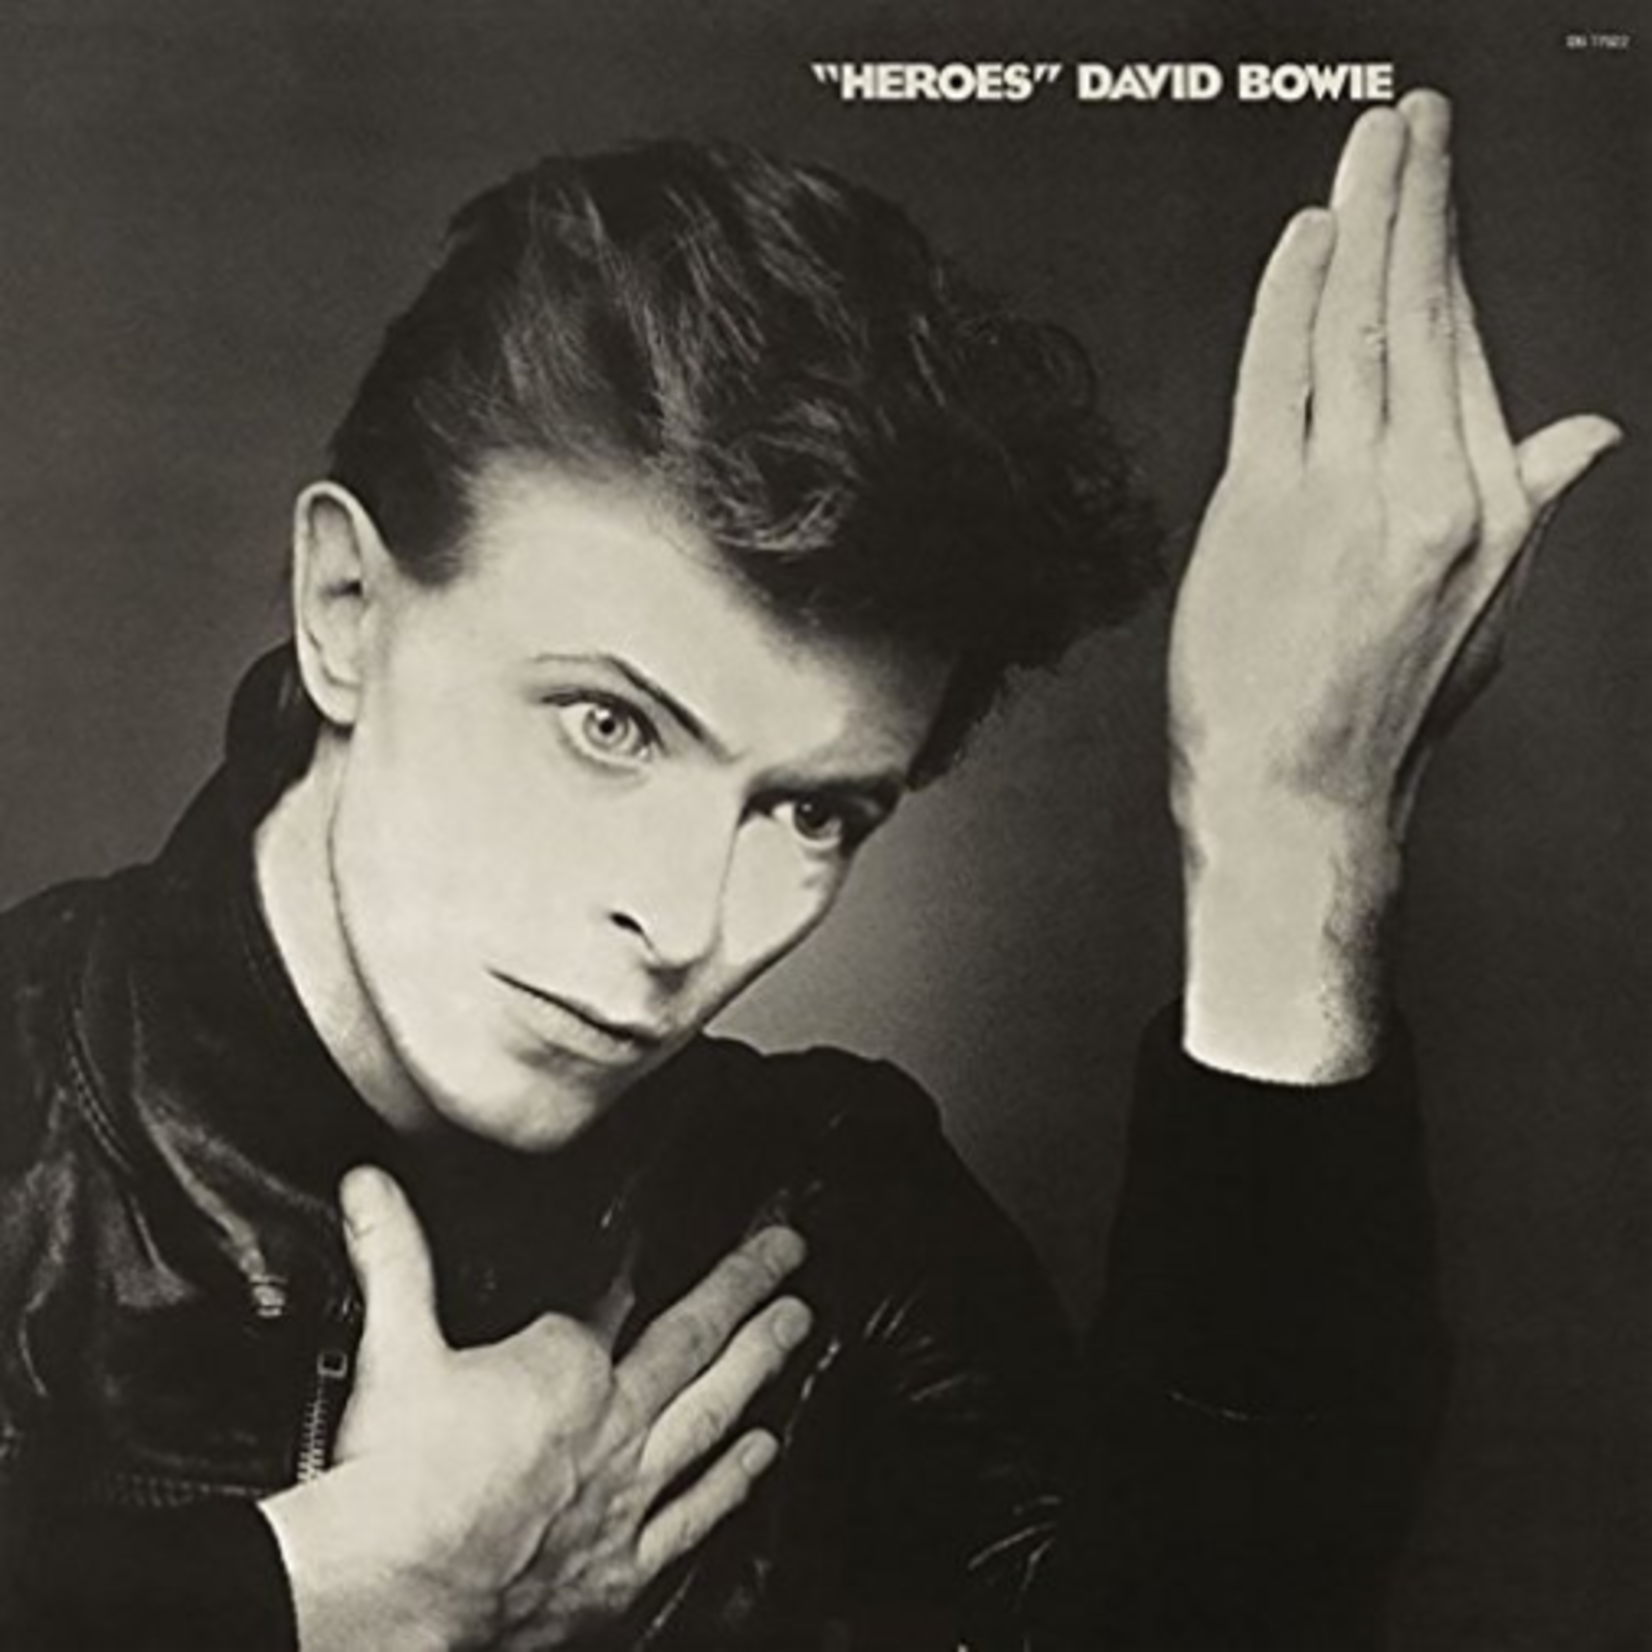 DAVID BOWIE HEROES (REMASTERED)